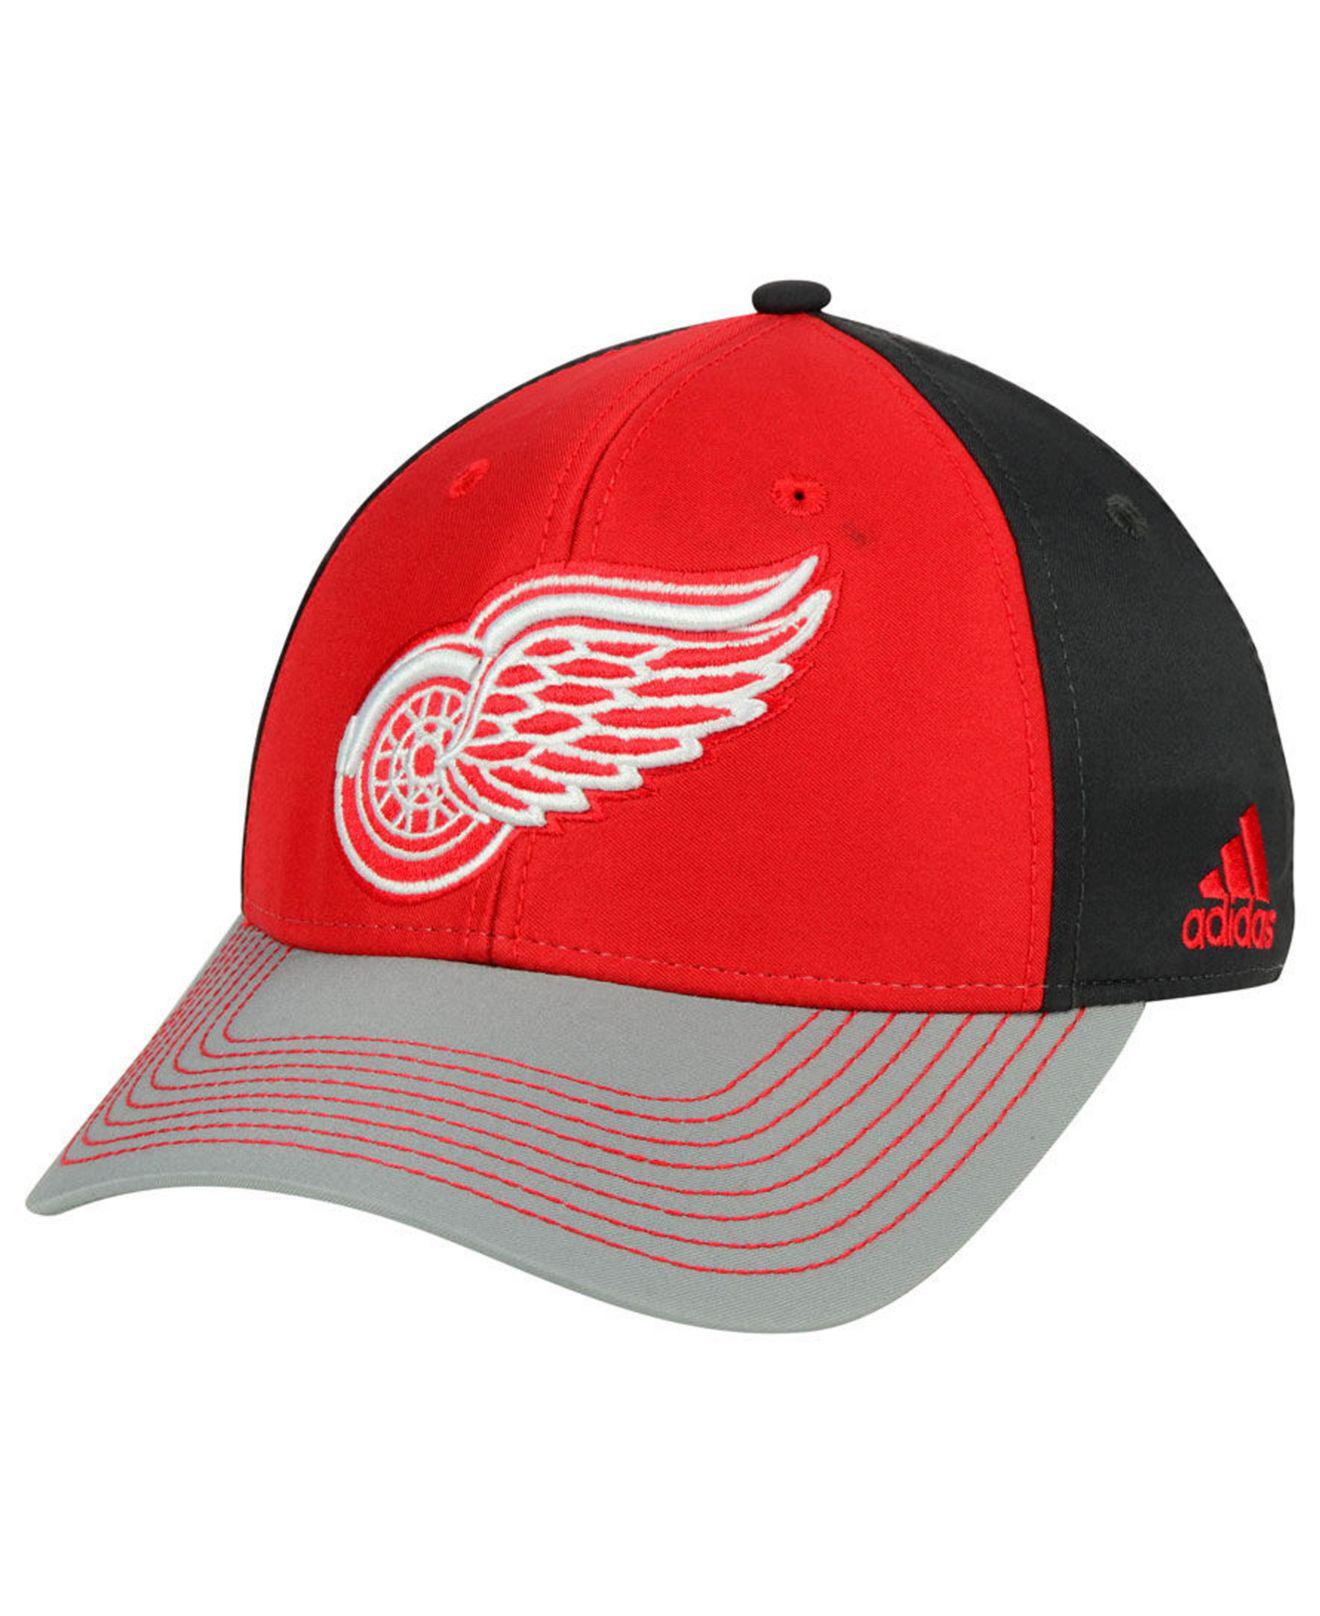 236db2b4710c2 Lyst - adidas Detroit Red Wings 2tone Stitch Flex Cap in Red for Men